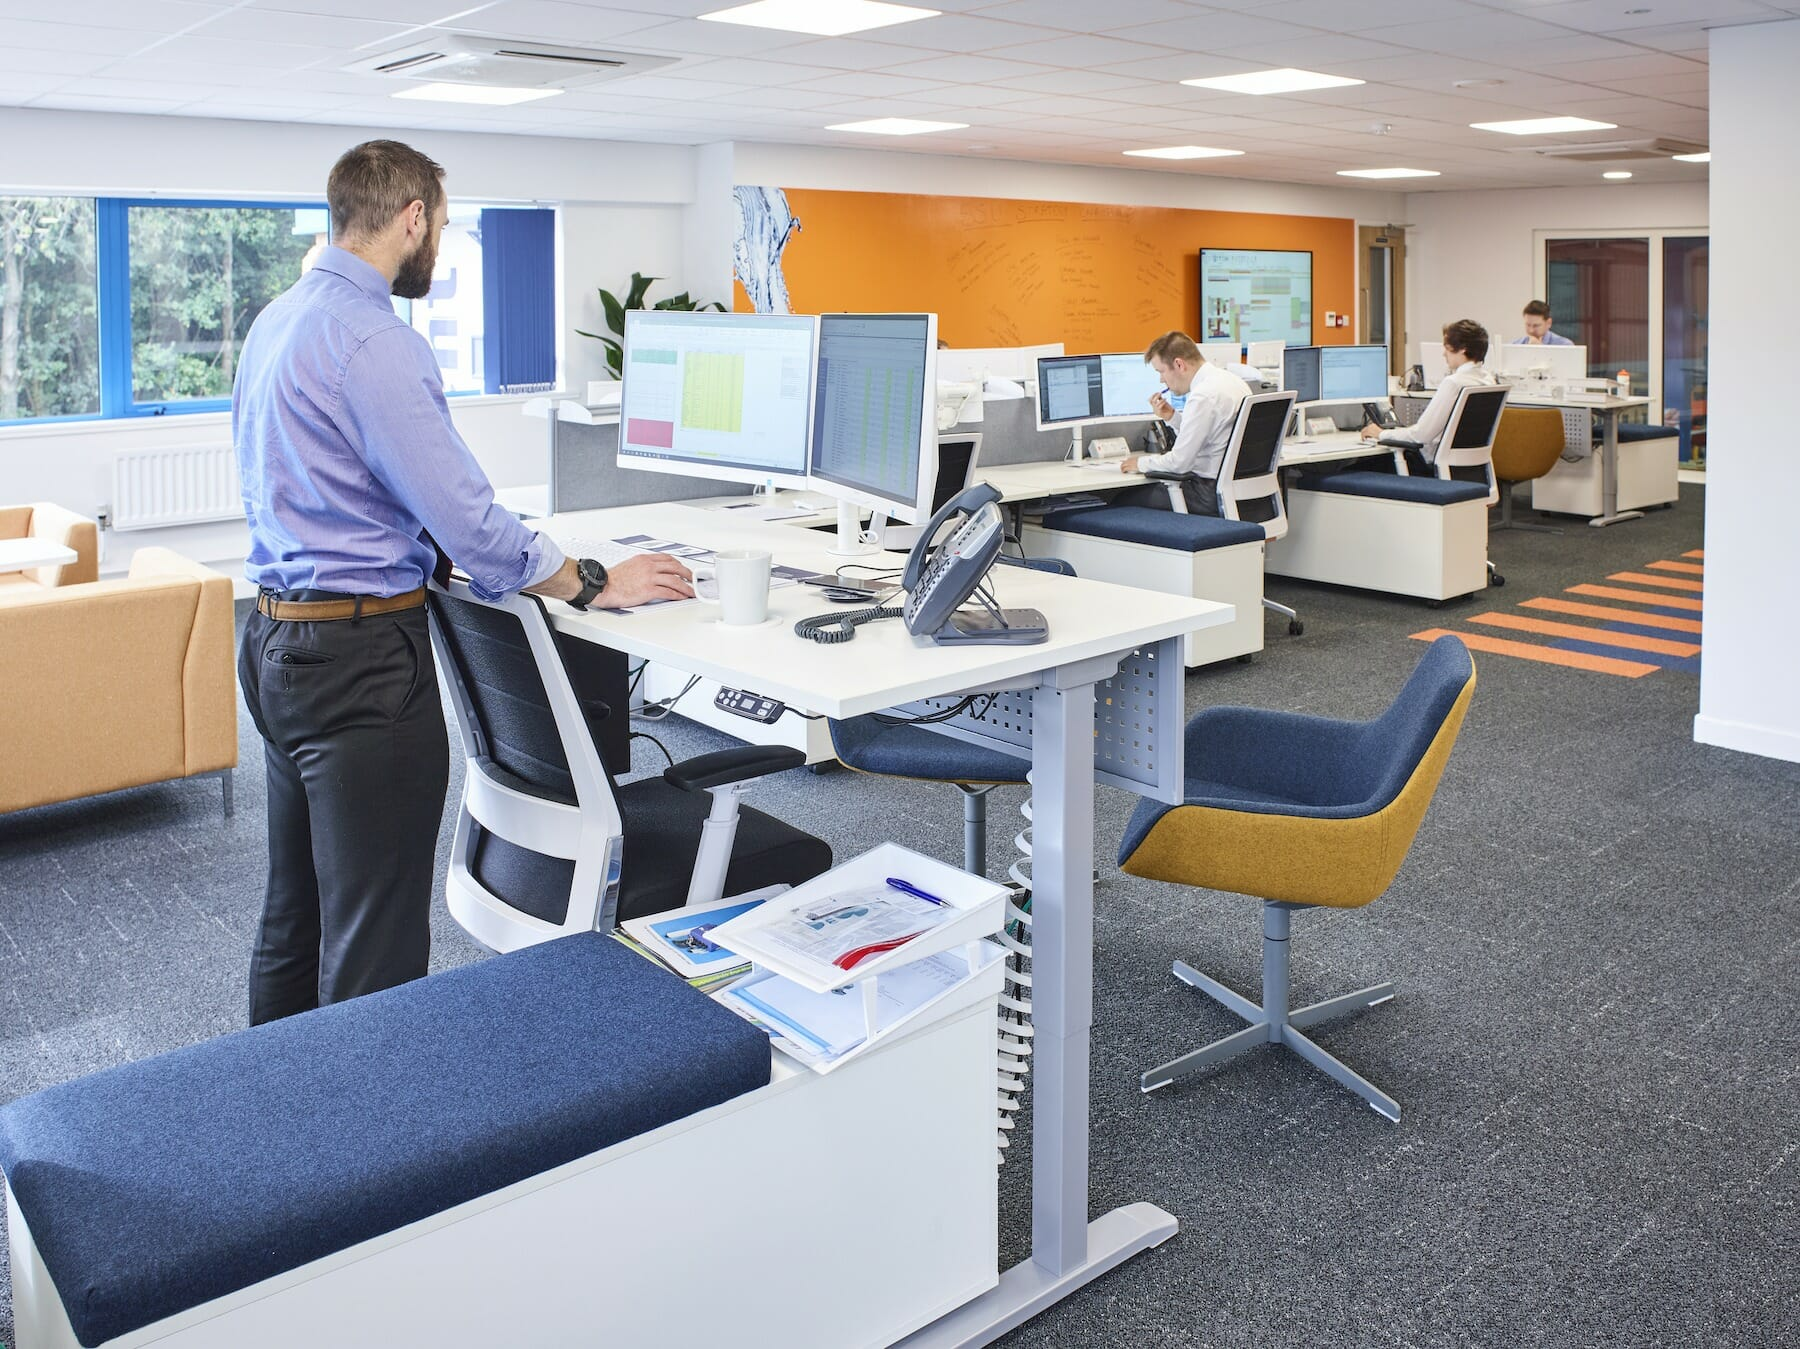 ProMinent commercial office design featuring a sit/stand desk